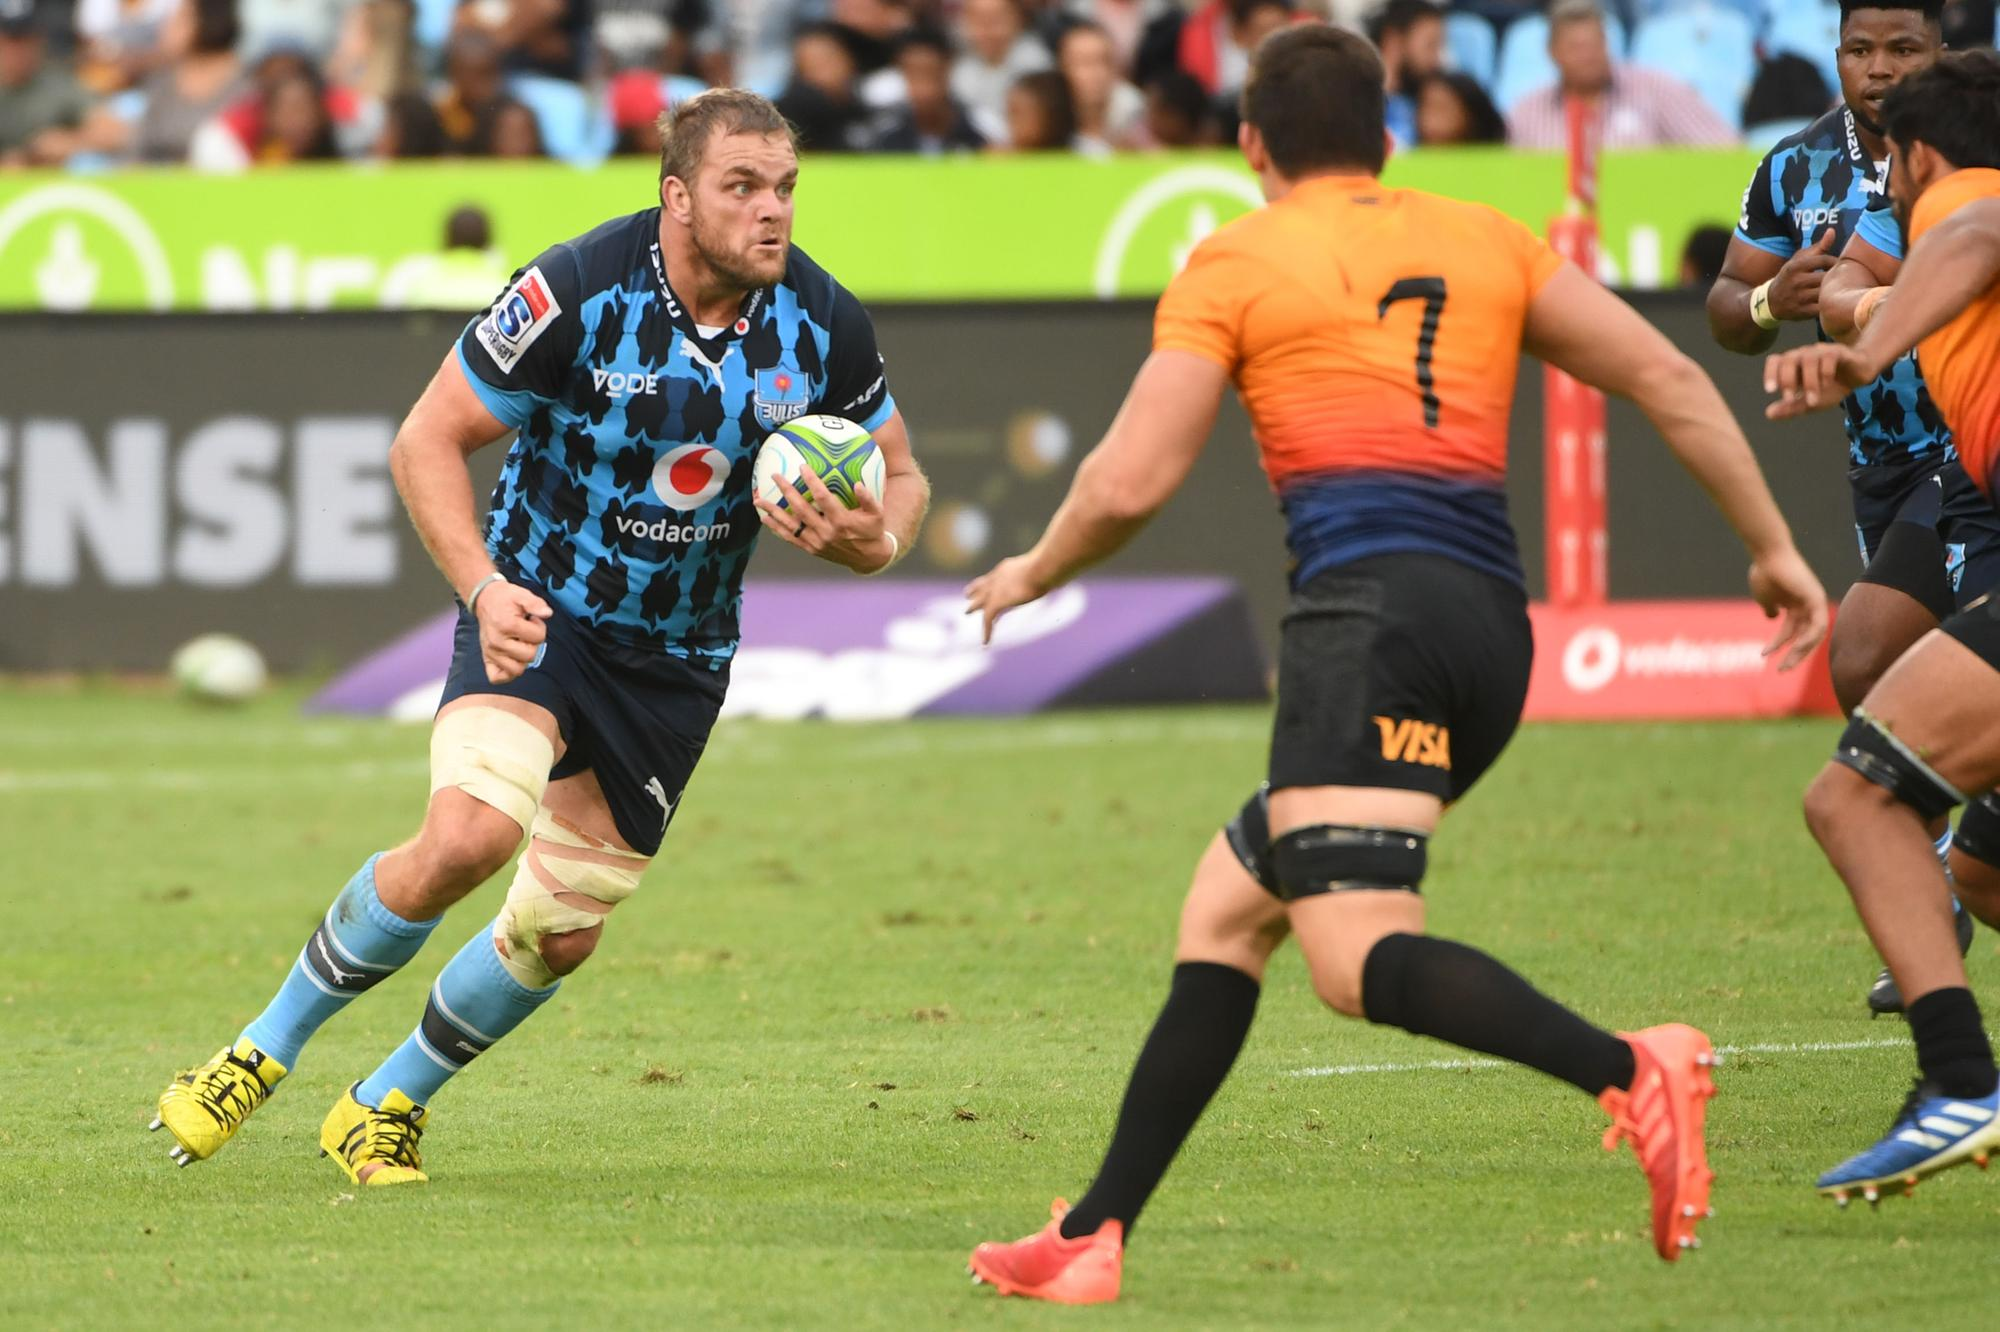 Edinburgh Rugby sign South African lock Andries Ferreira